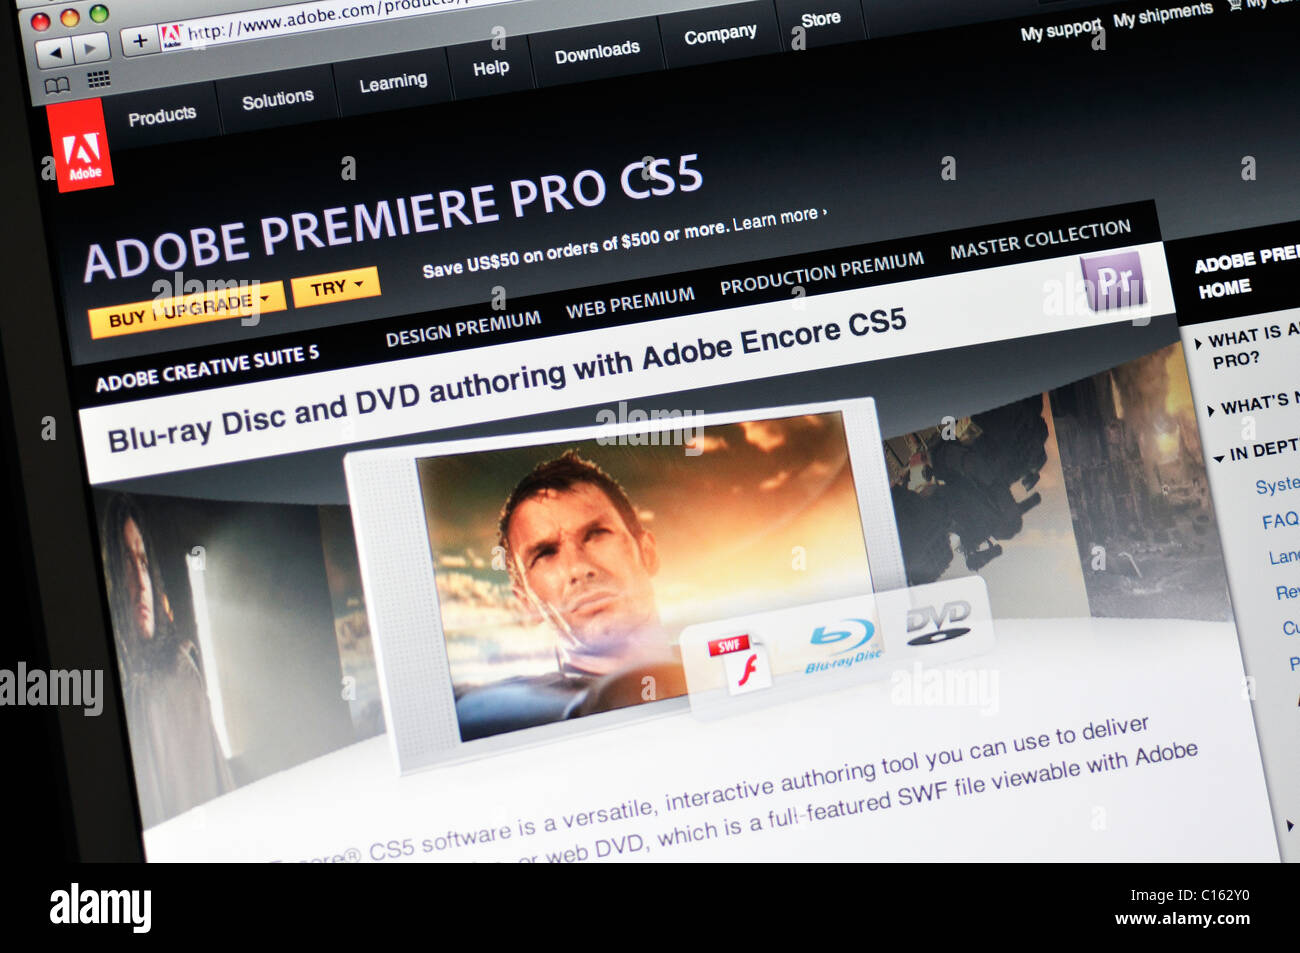 Adobe Premiere Pro CS5 website - Stock Image